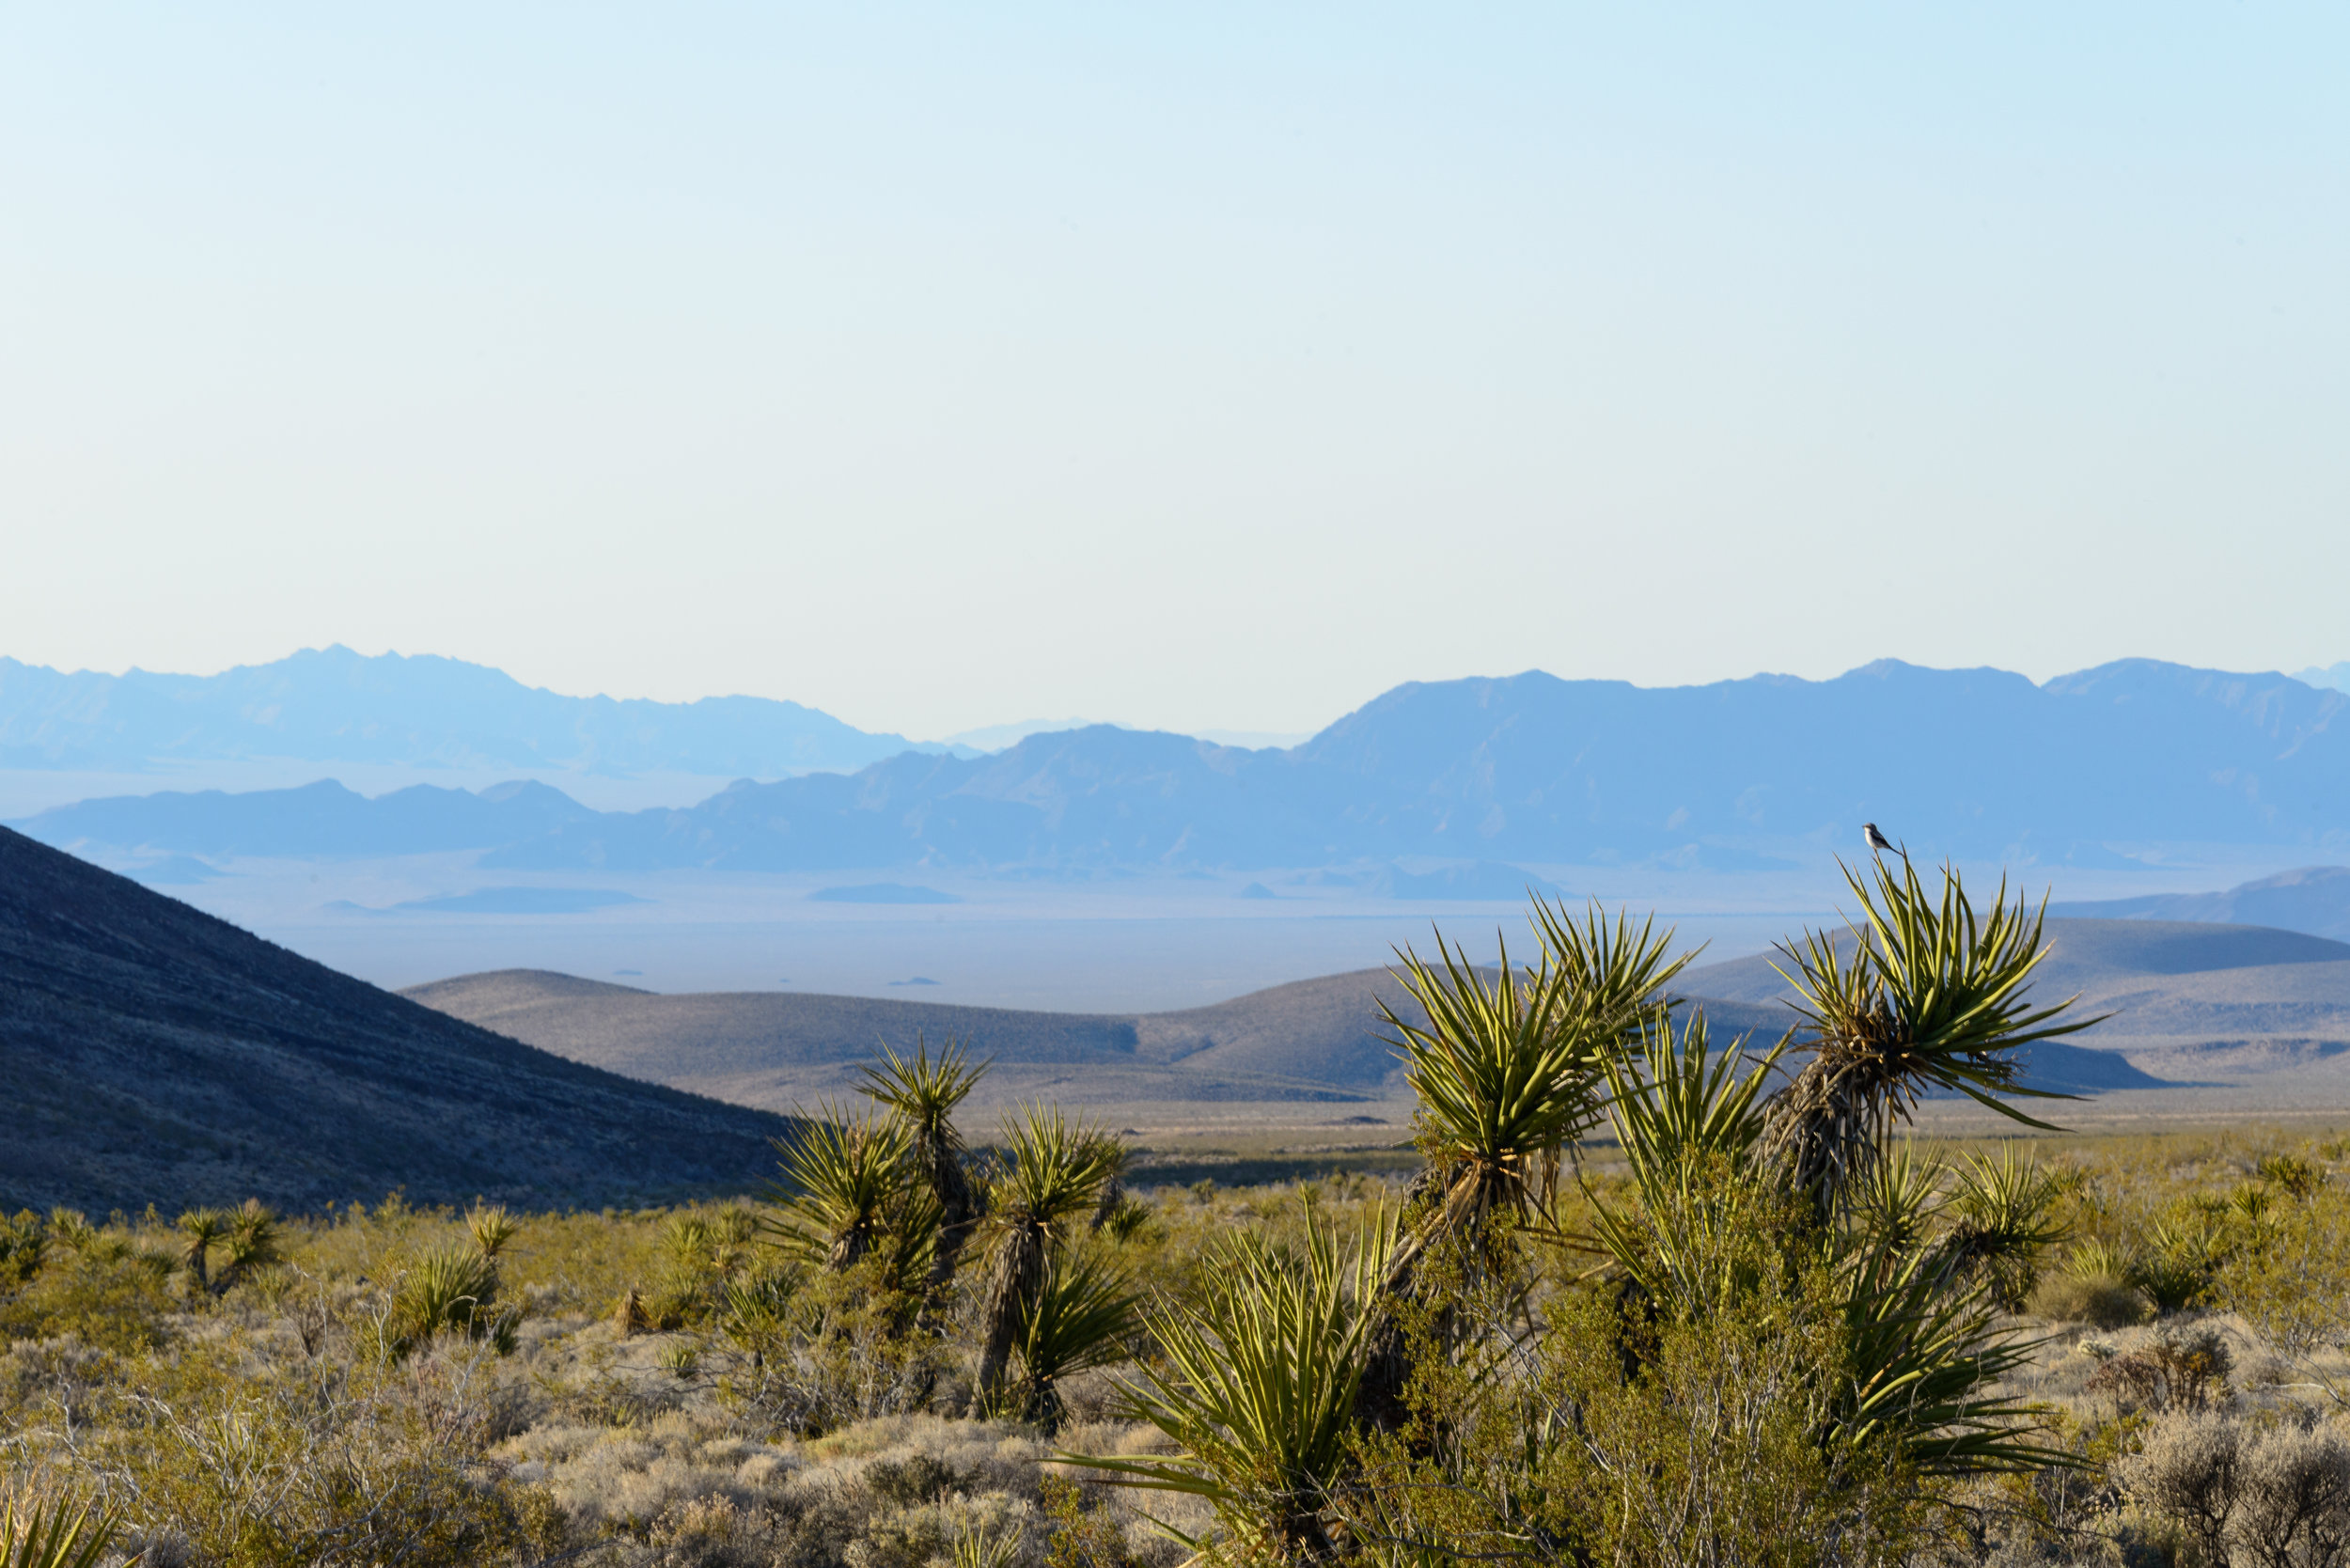 A bird perched on a Mojave yucca in the Preserve, with the Cadiz Valley in the distance.